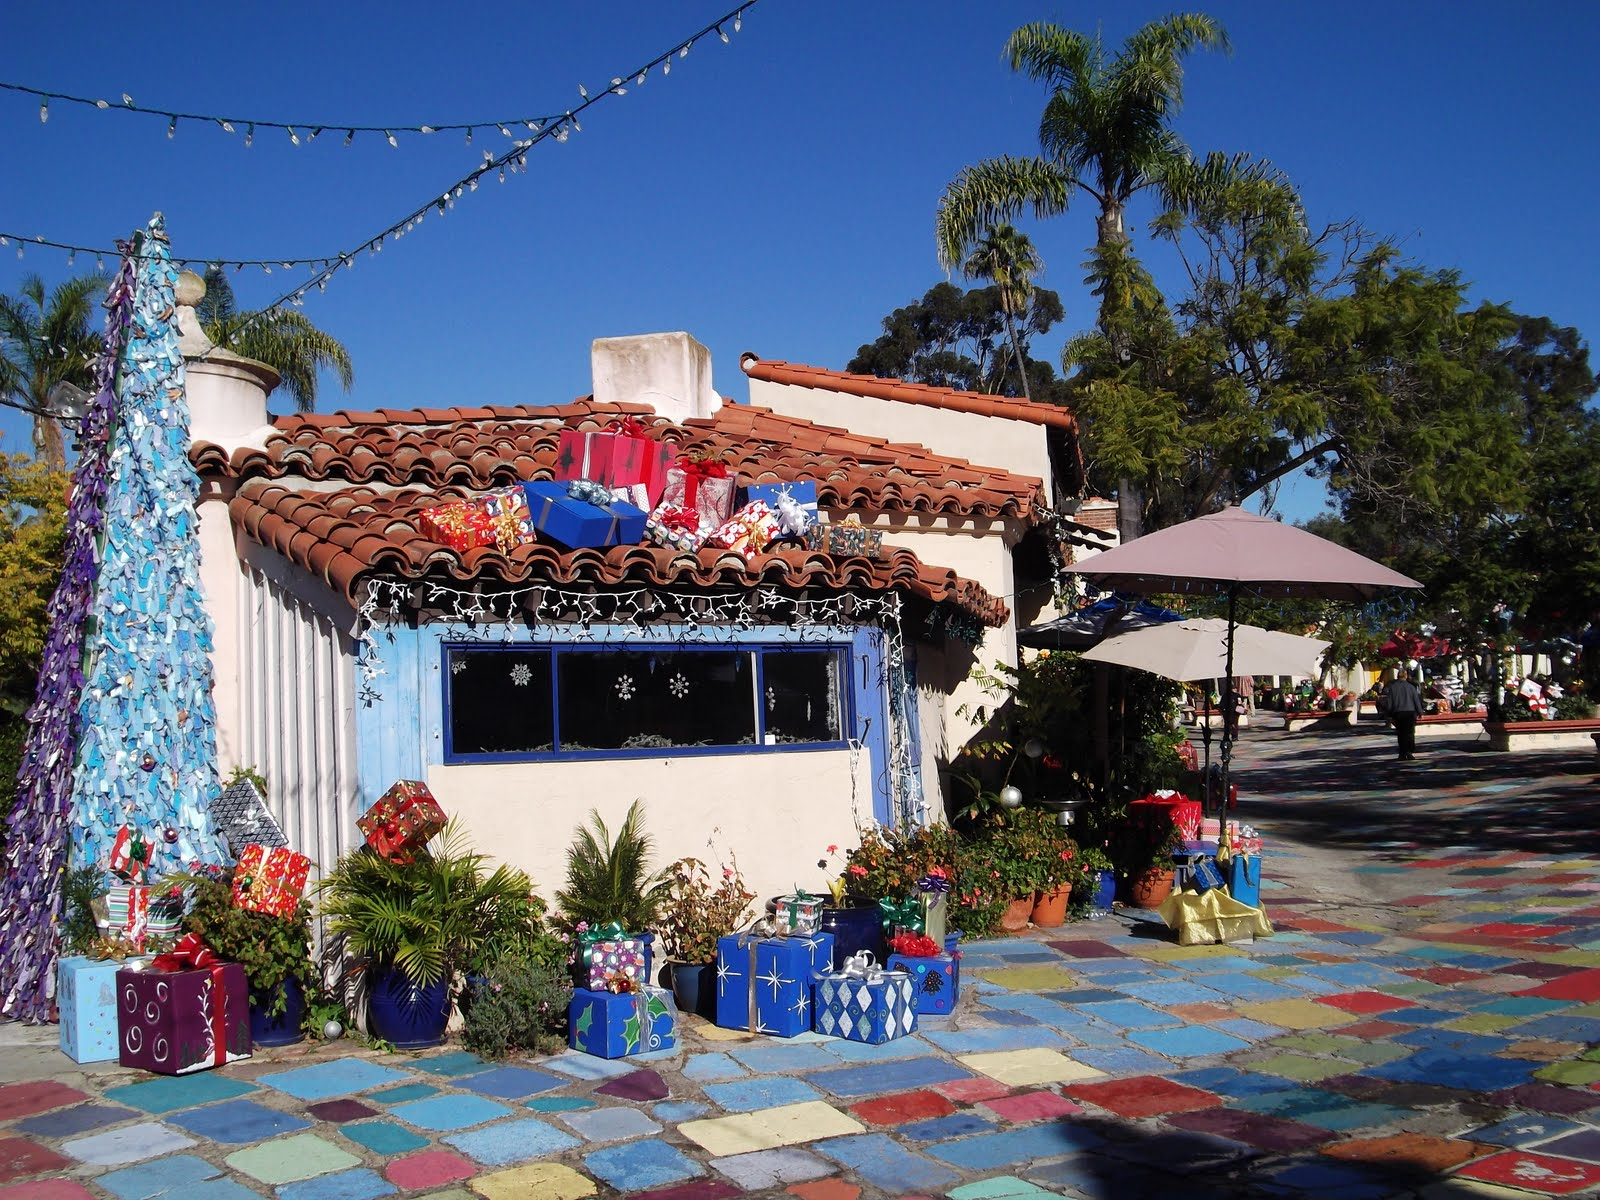 Spanish Village Art Center - Balboa Park: Ding Dong, Ding Dong...Christmas Bells Are Ringing!